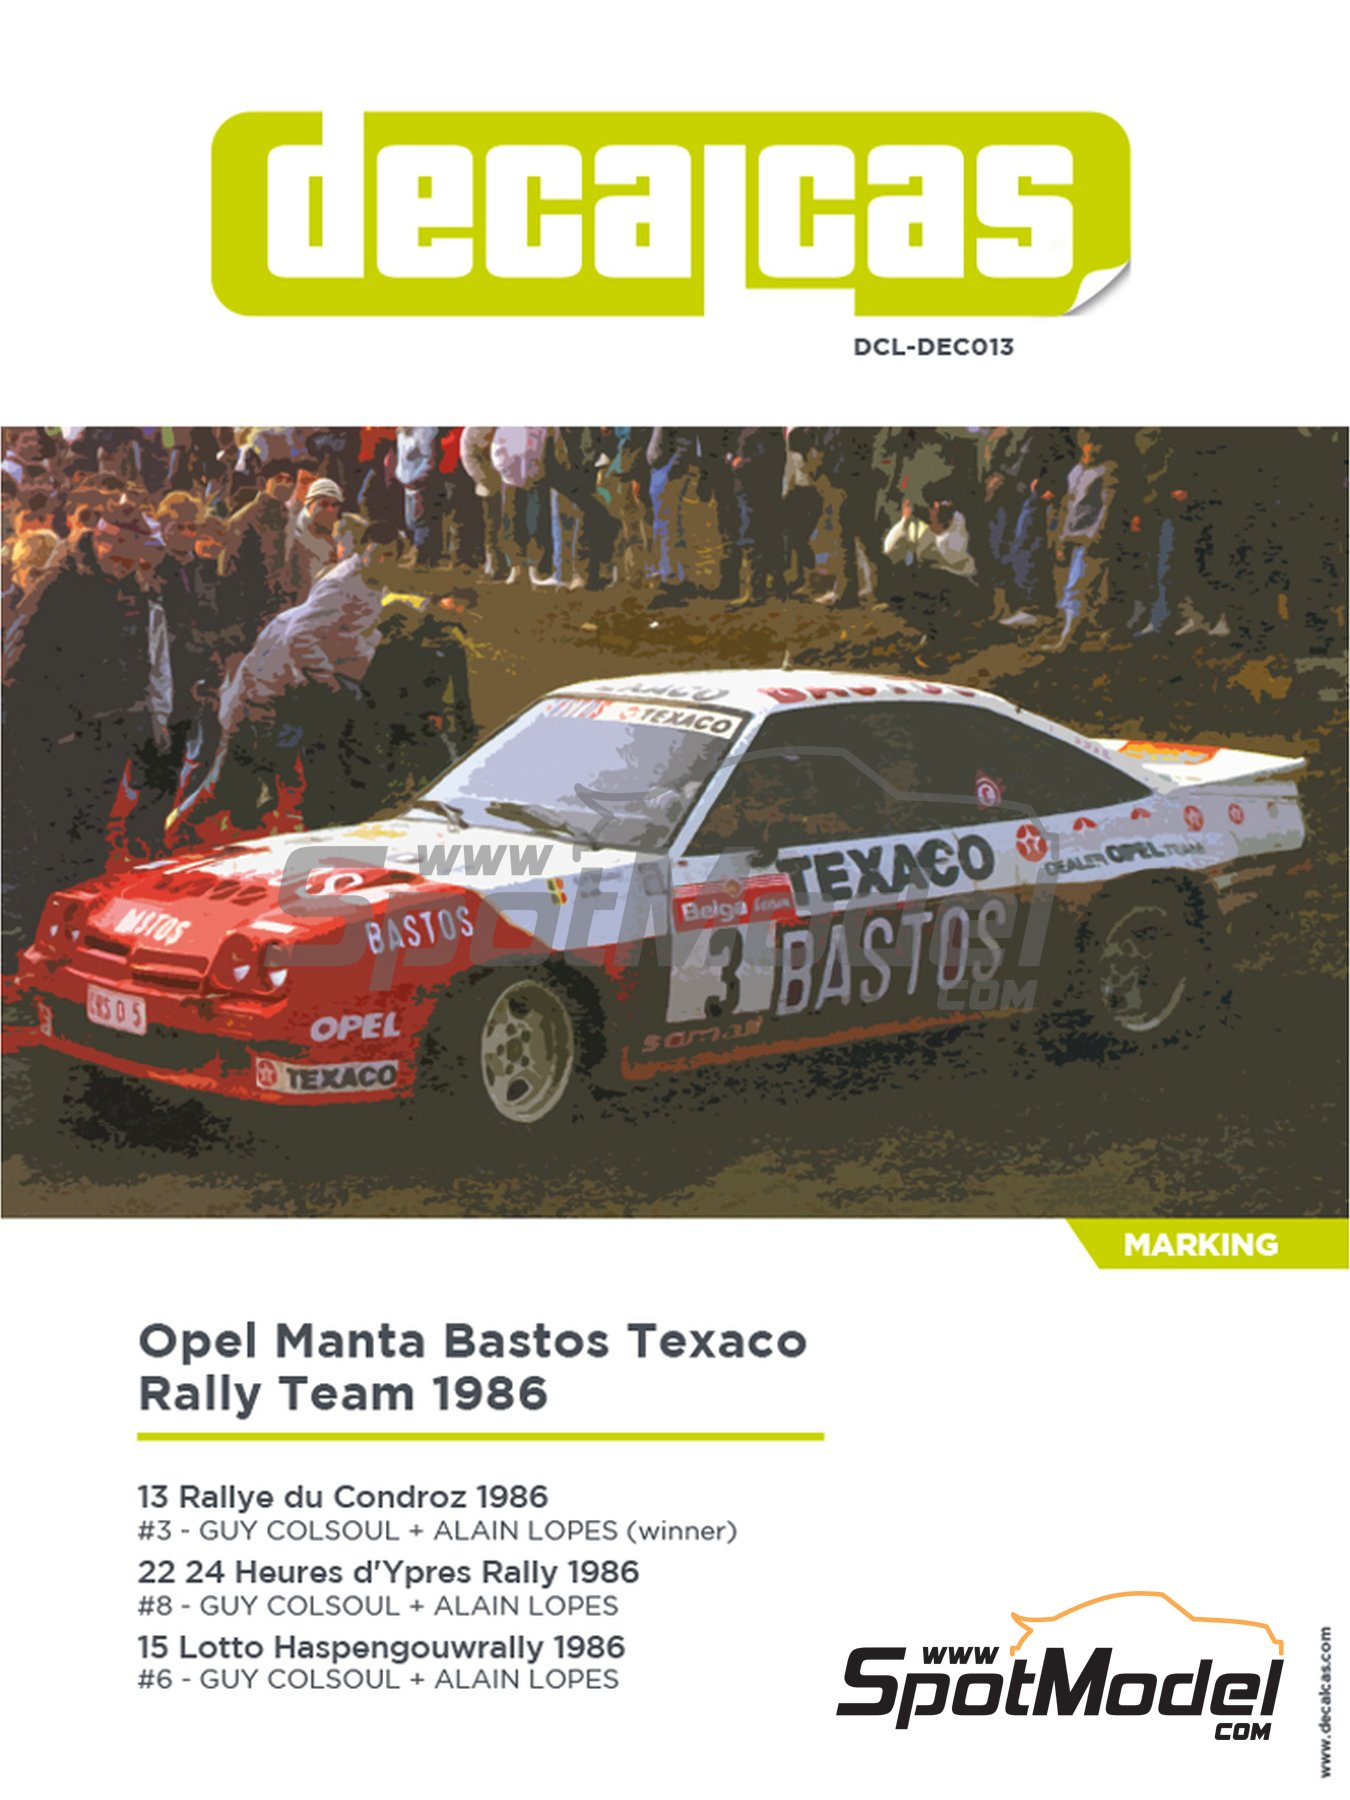 Opel Manta 400 Group B Bastos Texaco Rally Team - 24 Hours de Ypres Rally, Condroz Rally, Haspengow Rally 1986 | Marking / livery in 1/24 scale manufactured by Decalcas (ref. DCL-DEC013) image